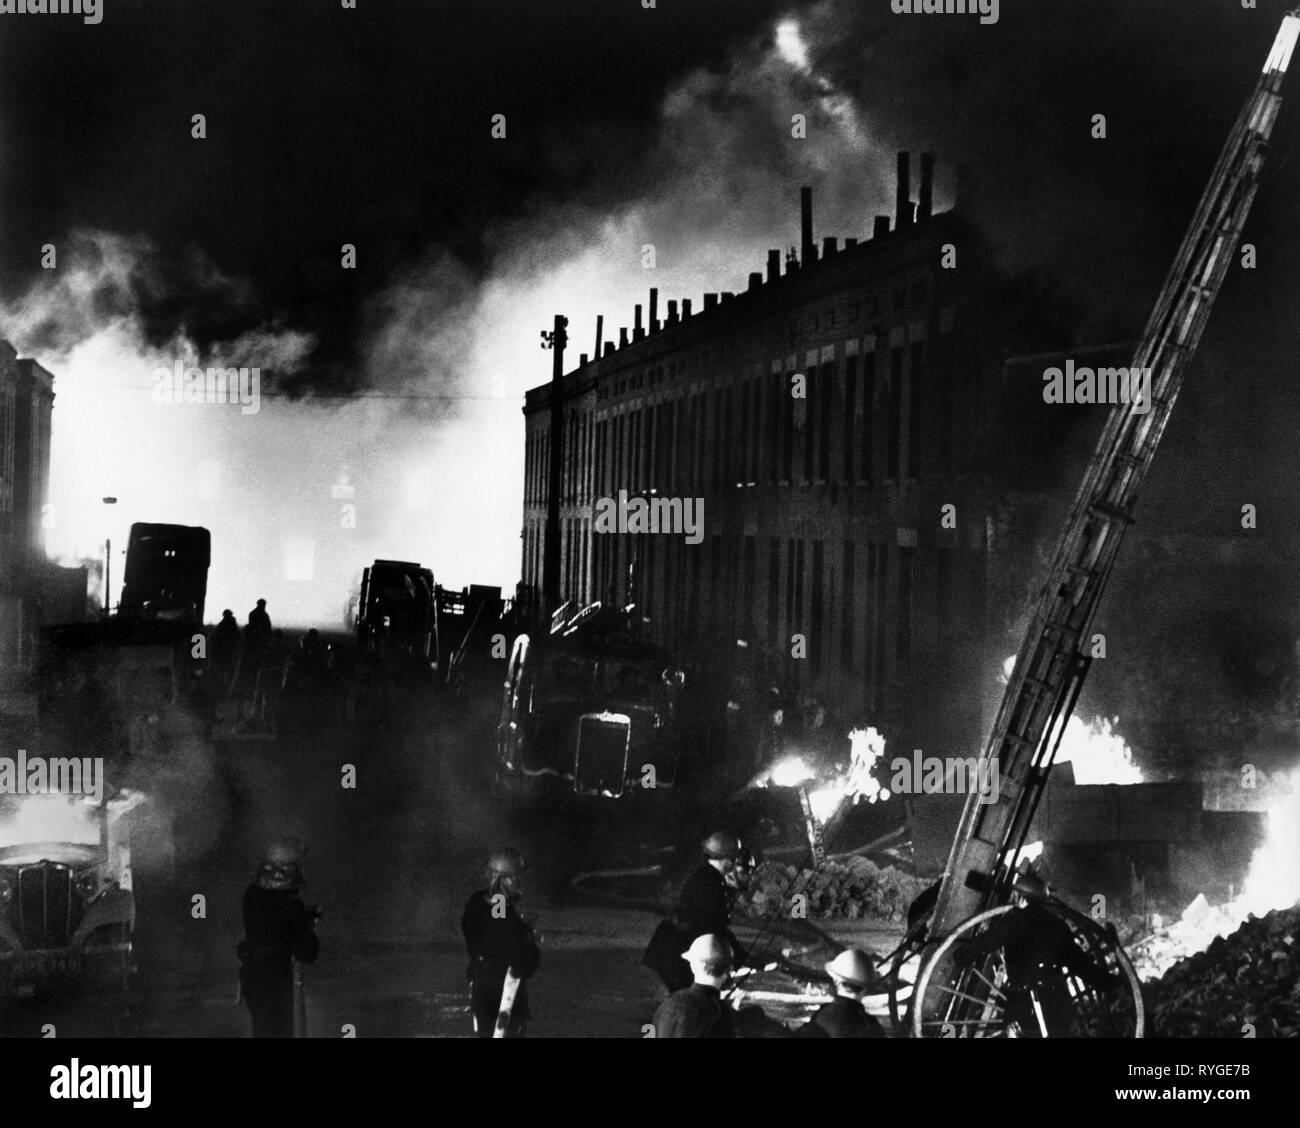 BATTLE OF BRITAIN, LONDON BOMBINGS AFTERMATH, 1969 - Stock Image